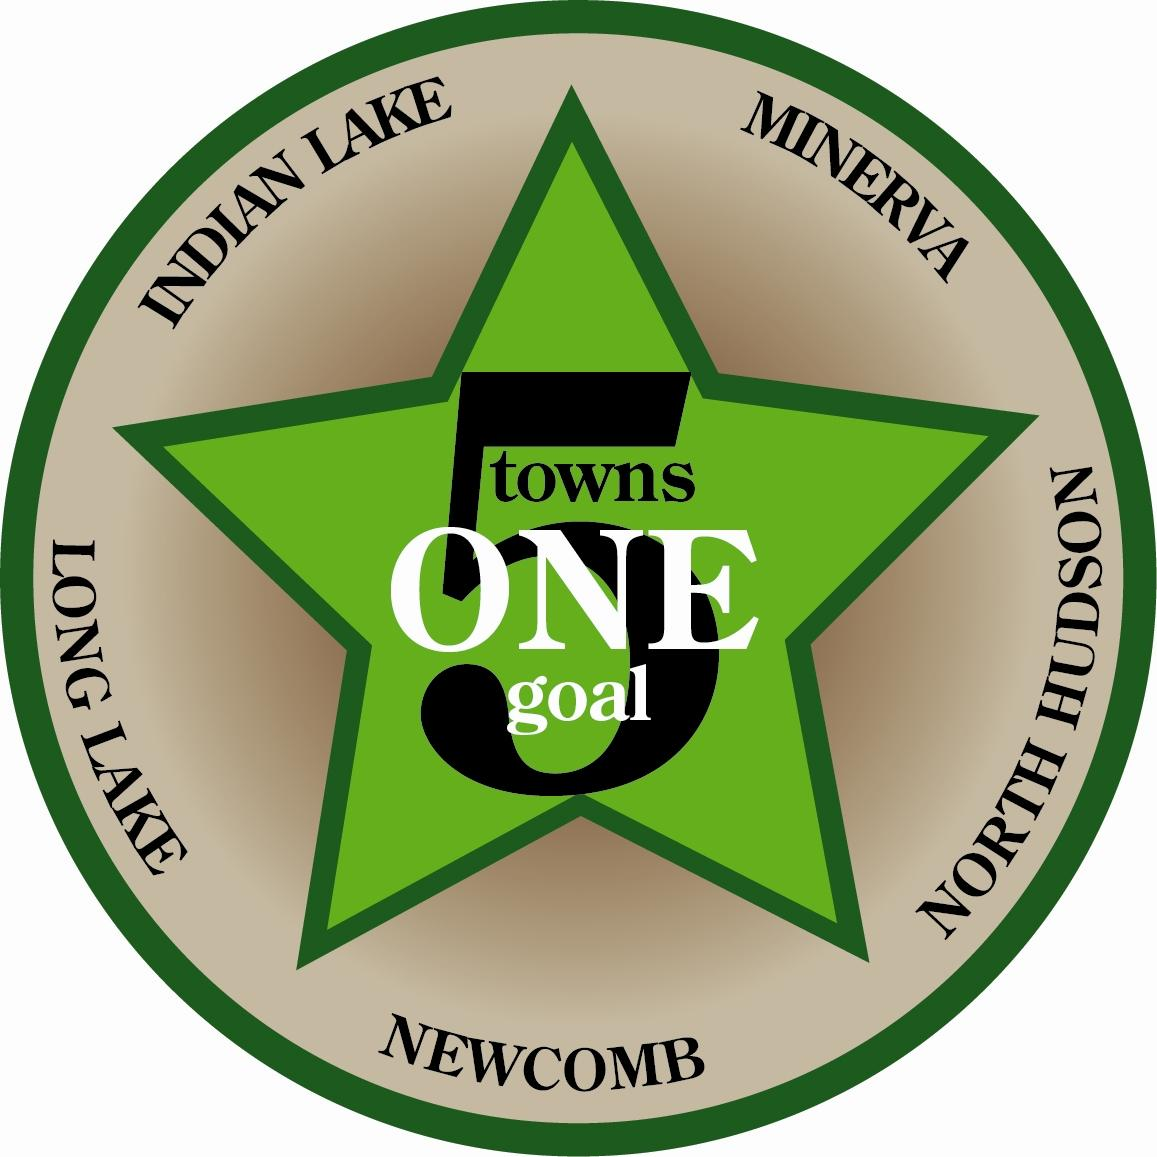 5 Towns One Goal - North Hudson - Indian Lake - Long Lake - Minerva - Newcomb